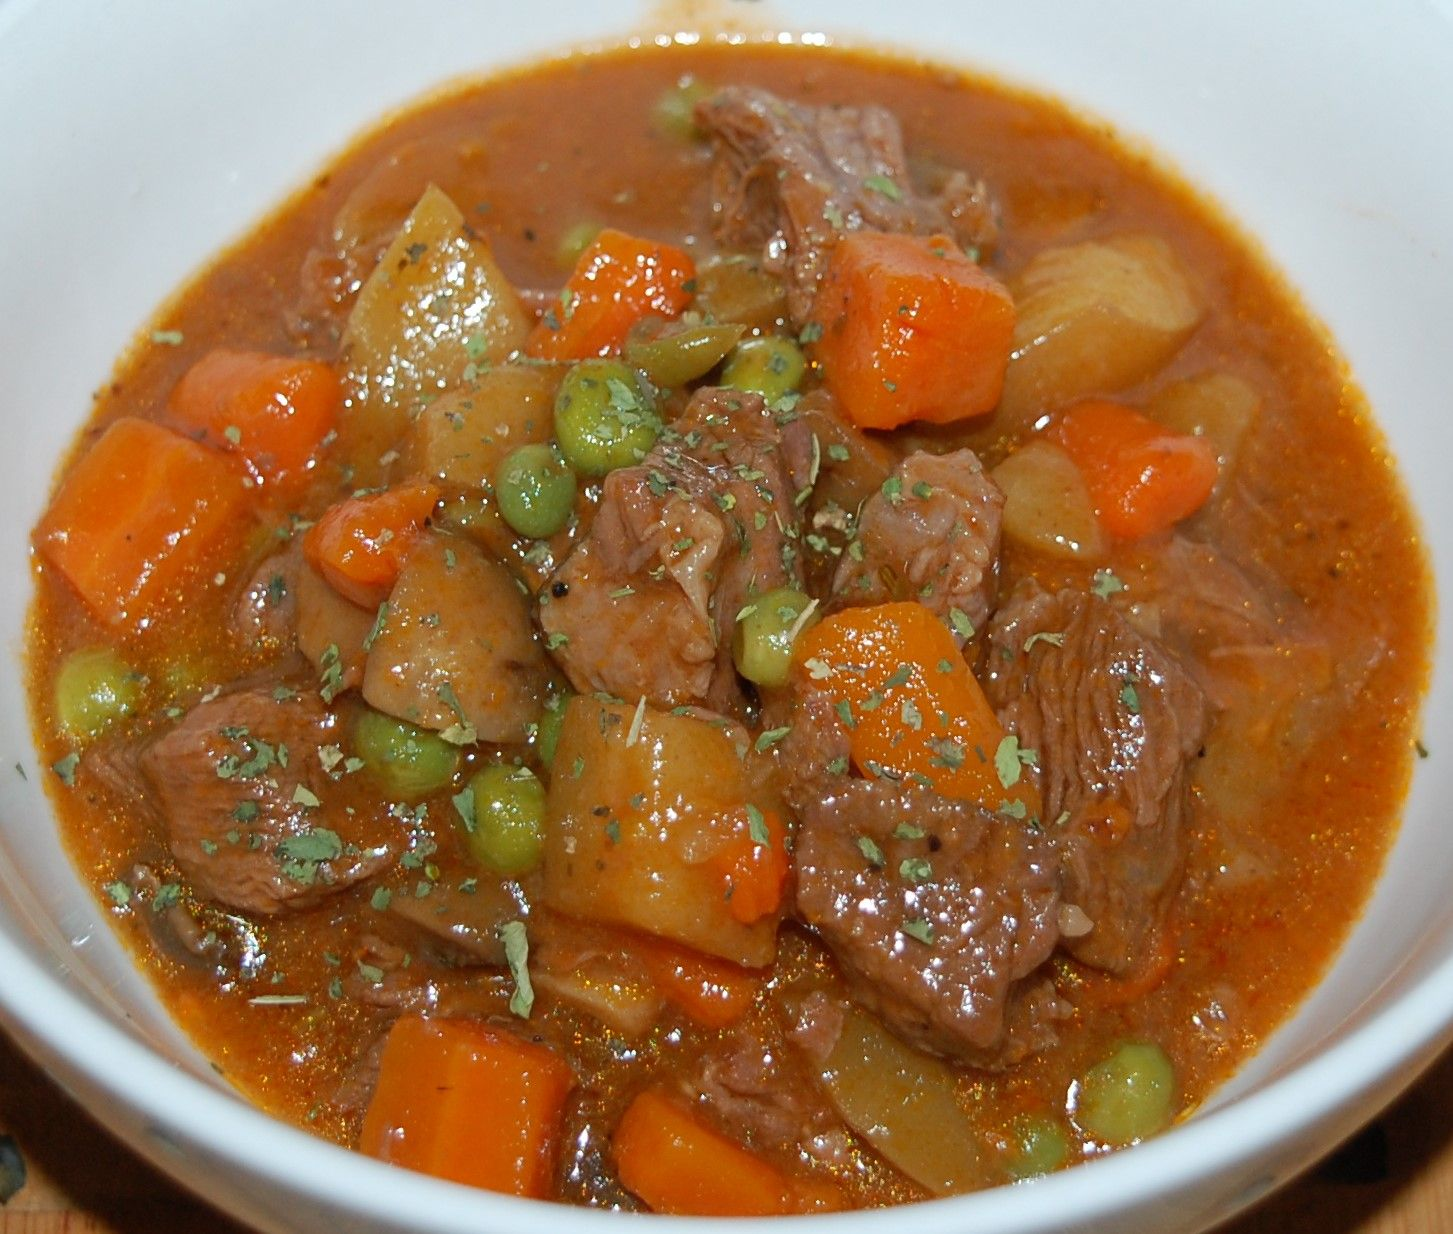 Instant Pot Beef Stew Stolenrecipes Net Recipe Beef Stew Pressure Cooker Recipes Pot Beef Stew Beef Stew Meat Recipes